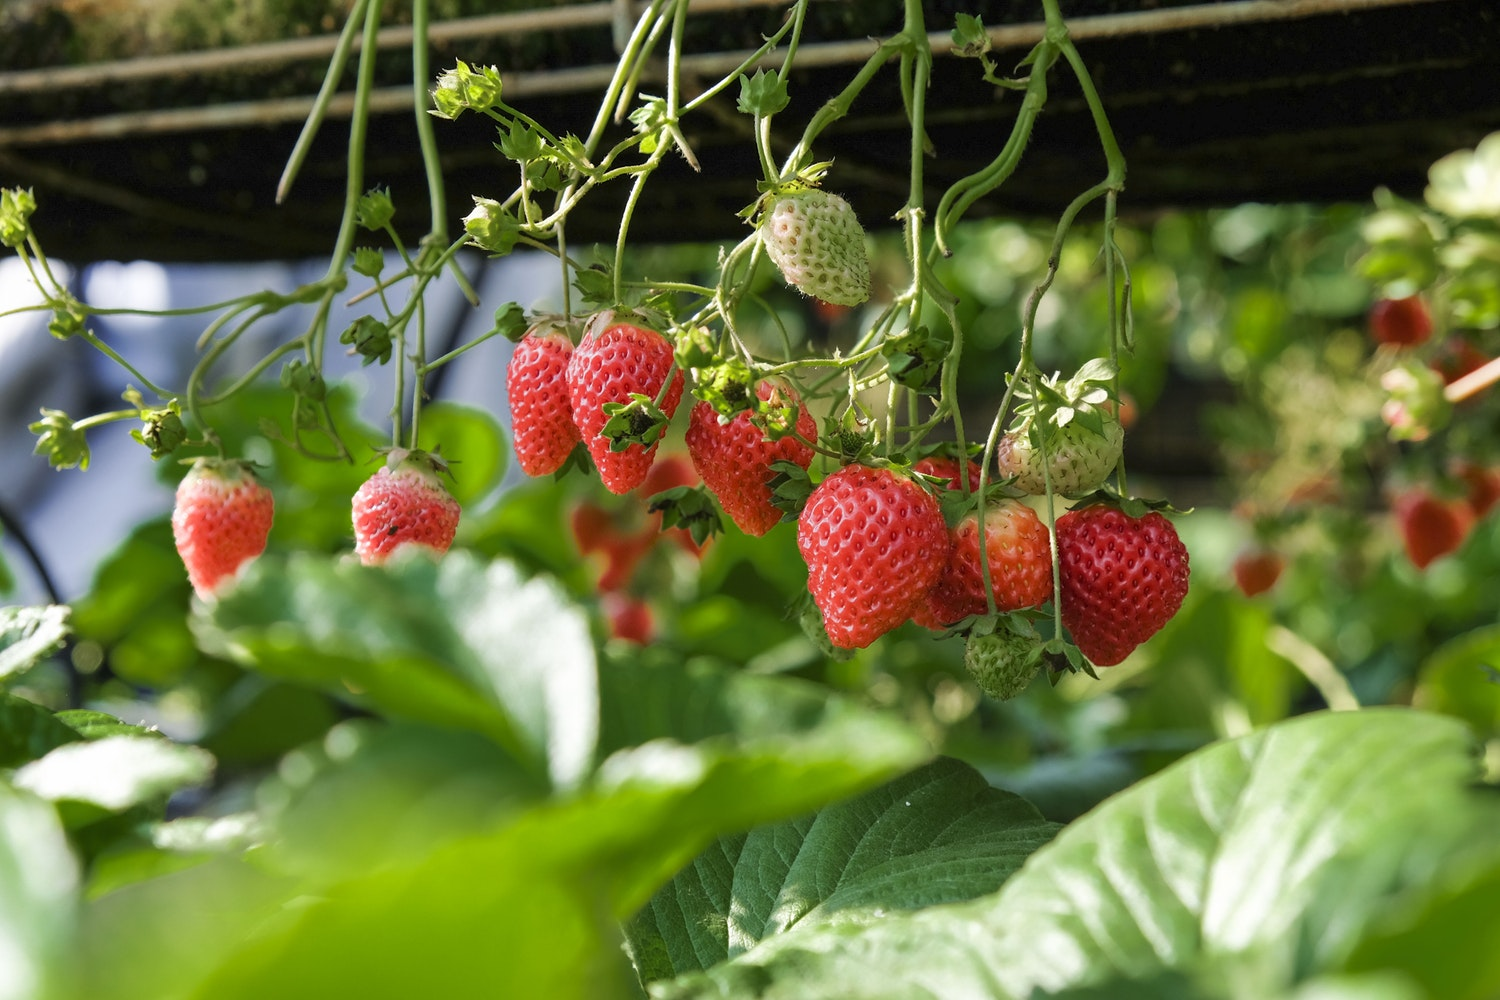 strawberry plant, strawberries